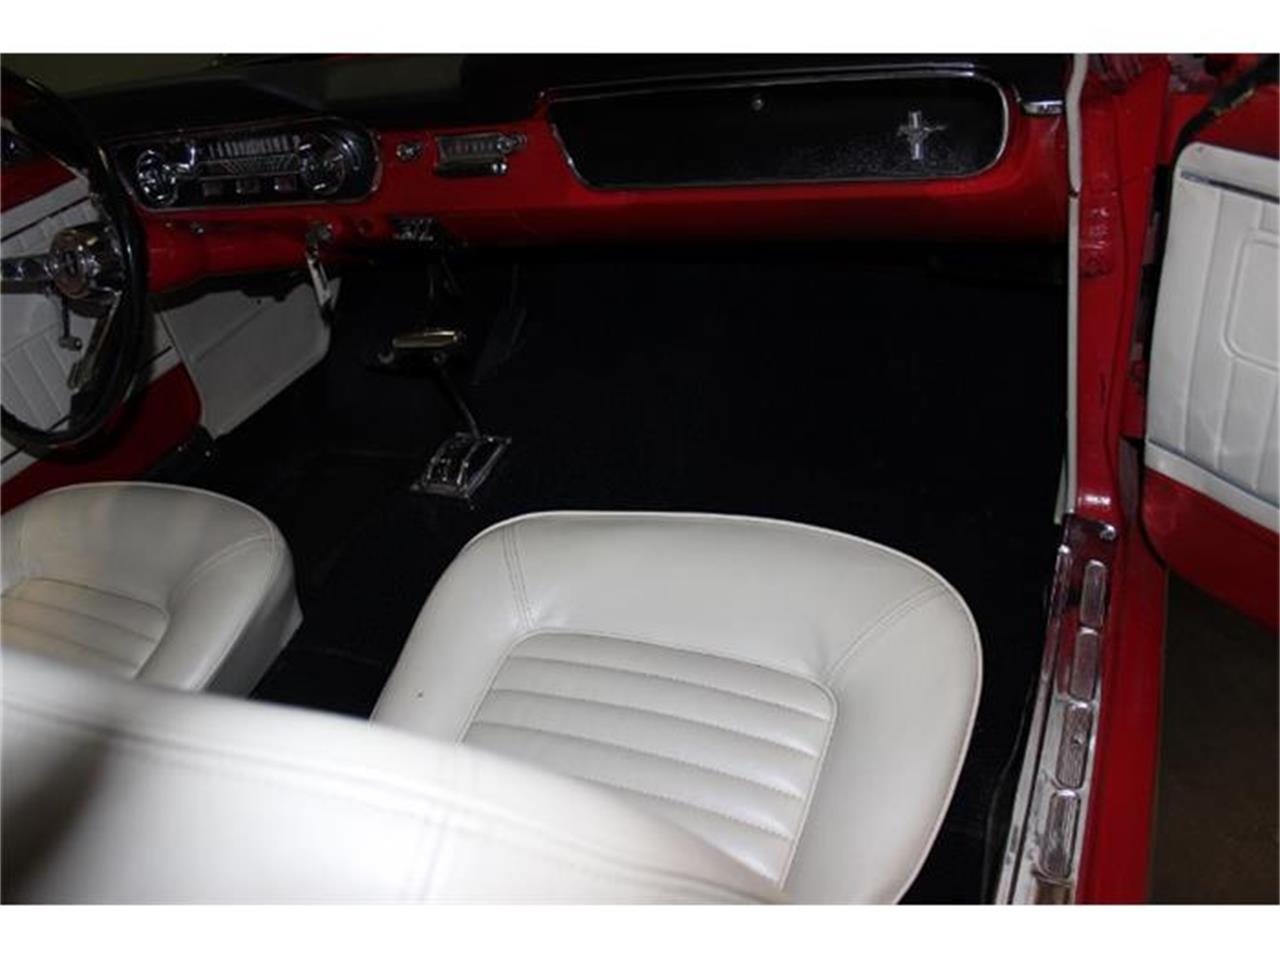 Large Picture of 1965 Mustang located in Lillington North Carolina - $19,500.00 - EK0D